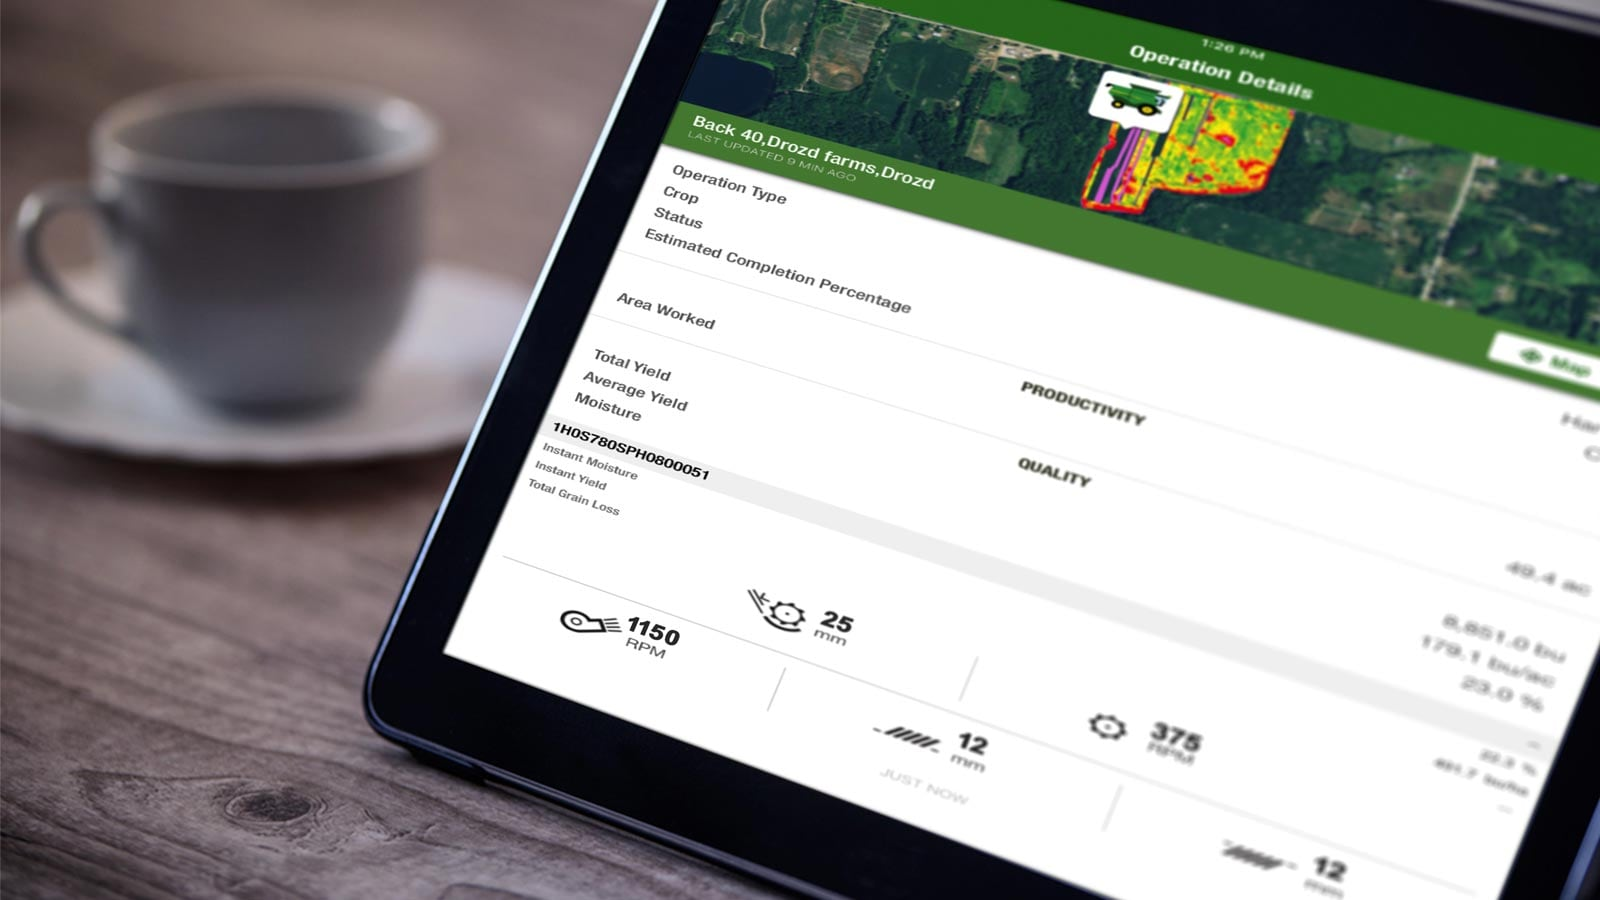 The MyOperations mobile app displayed on a tablet